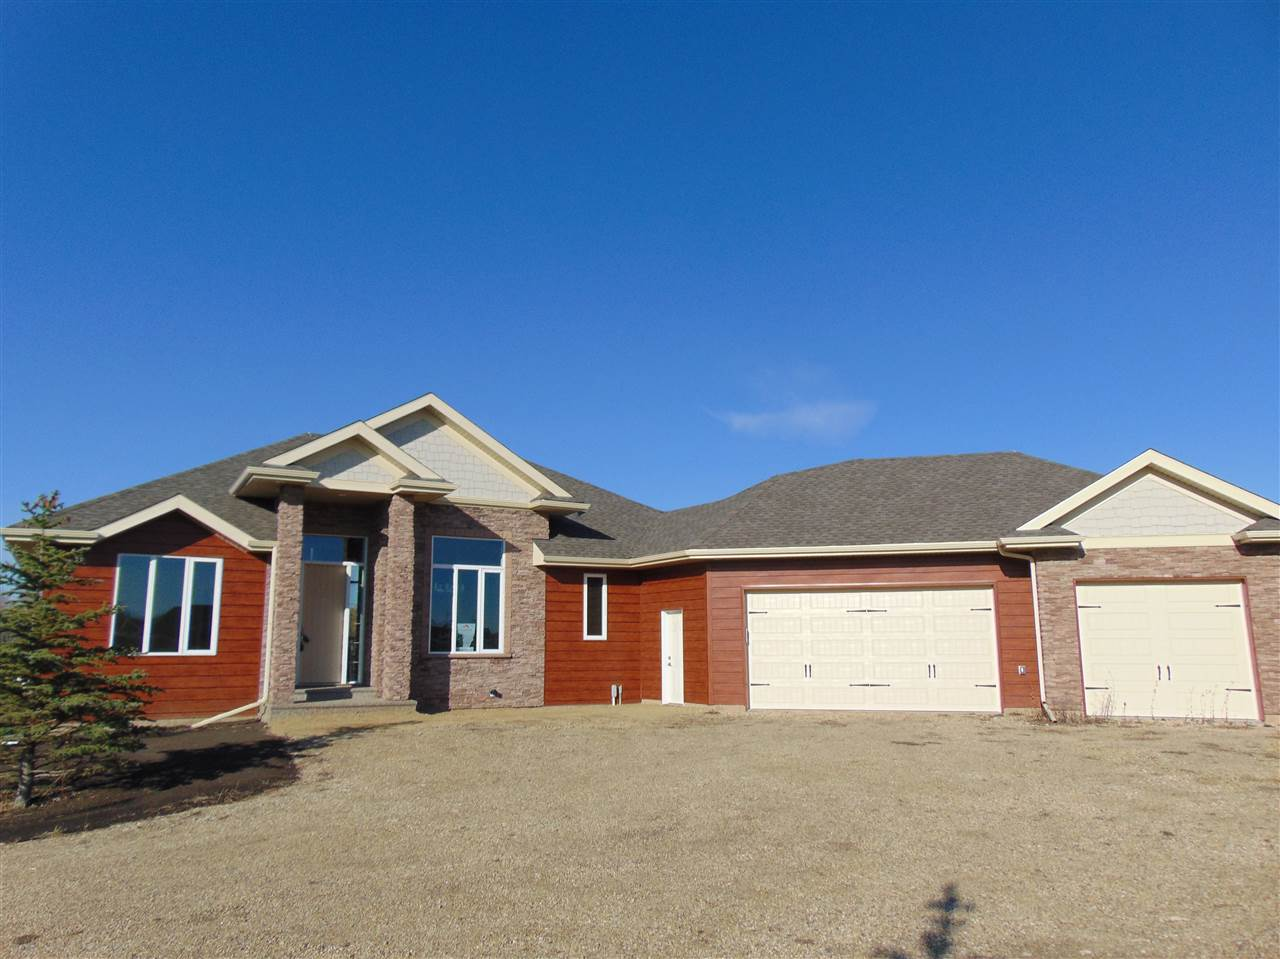 "FULLY FINISHED WALKOUT BUNGALOW with ""OVERSIZED"" TRIPLE ATTACHED HEATED GARAGE on 3.12 acres within minutes to the airport. 4 BEDROOMS, 3 BATHS, FORMAL DINING, 14' ceilings in living area and 9' ceiling in the rest of the house. Outstanding workmanship including, foundation wrapped in waterproof membrane, exterior cultured stone and NaturClad, large main floor deck, premium granite throughout with engineered hardwood and tile, natural stone f/p and custom built closets. The walkout basement provides lots of light, a wetbar, open area for the big screen, another bath, bedroom and office. This home has it all!! Come and take a peak. Shows awesome!!"